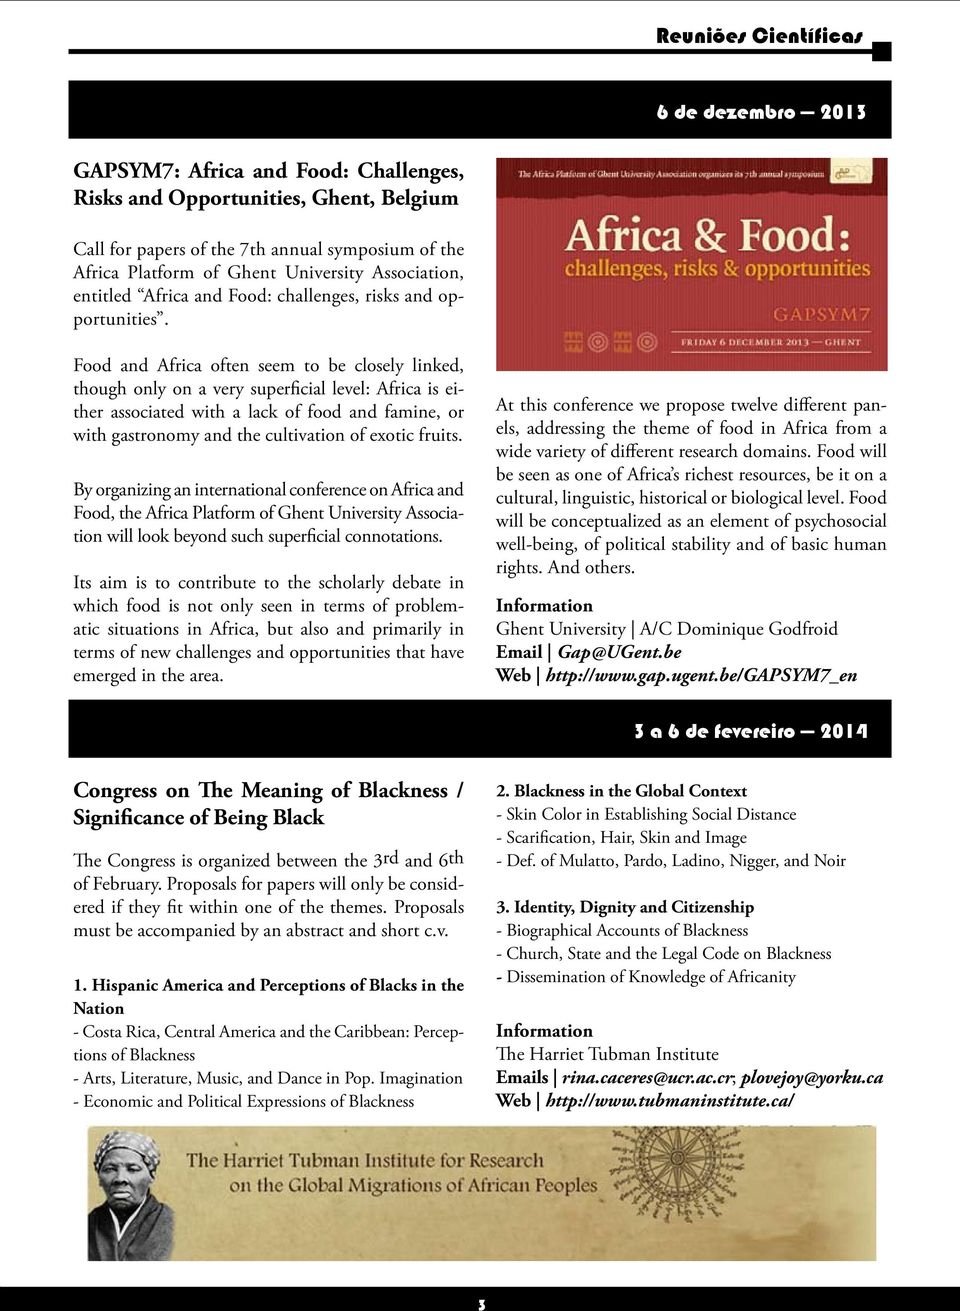 Food and Africa often seem to be closely linked, though only on a very superficial level: Africa is either associated with a lack of food and famine, or with gastronomy and the cultivation of exotic